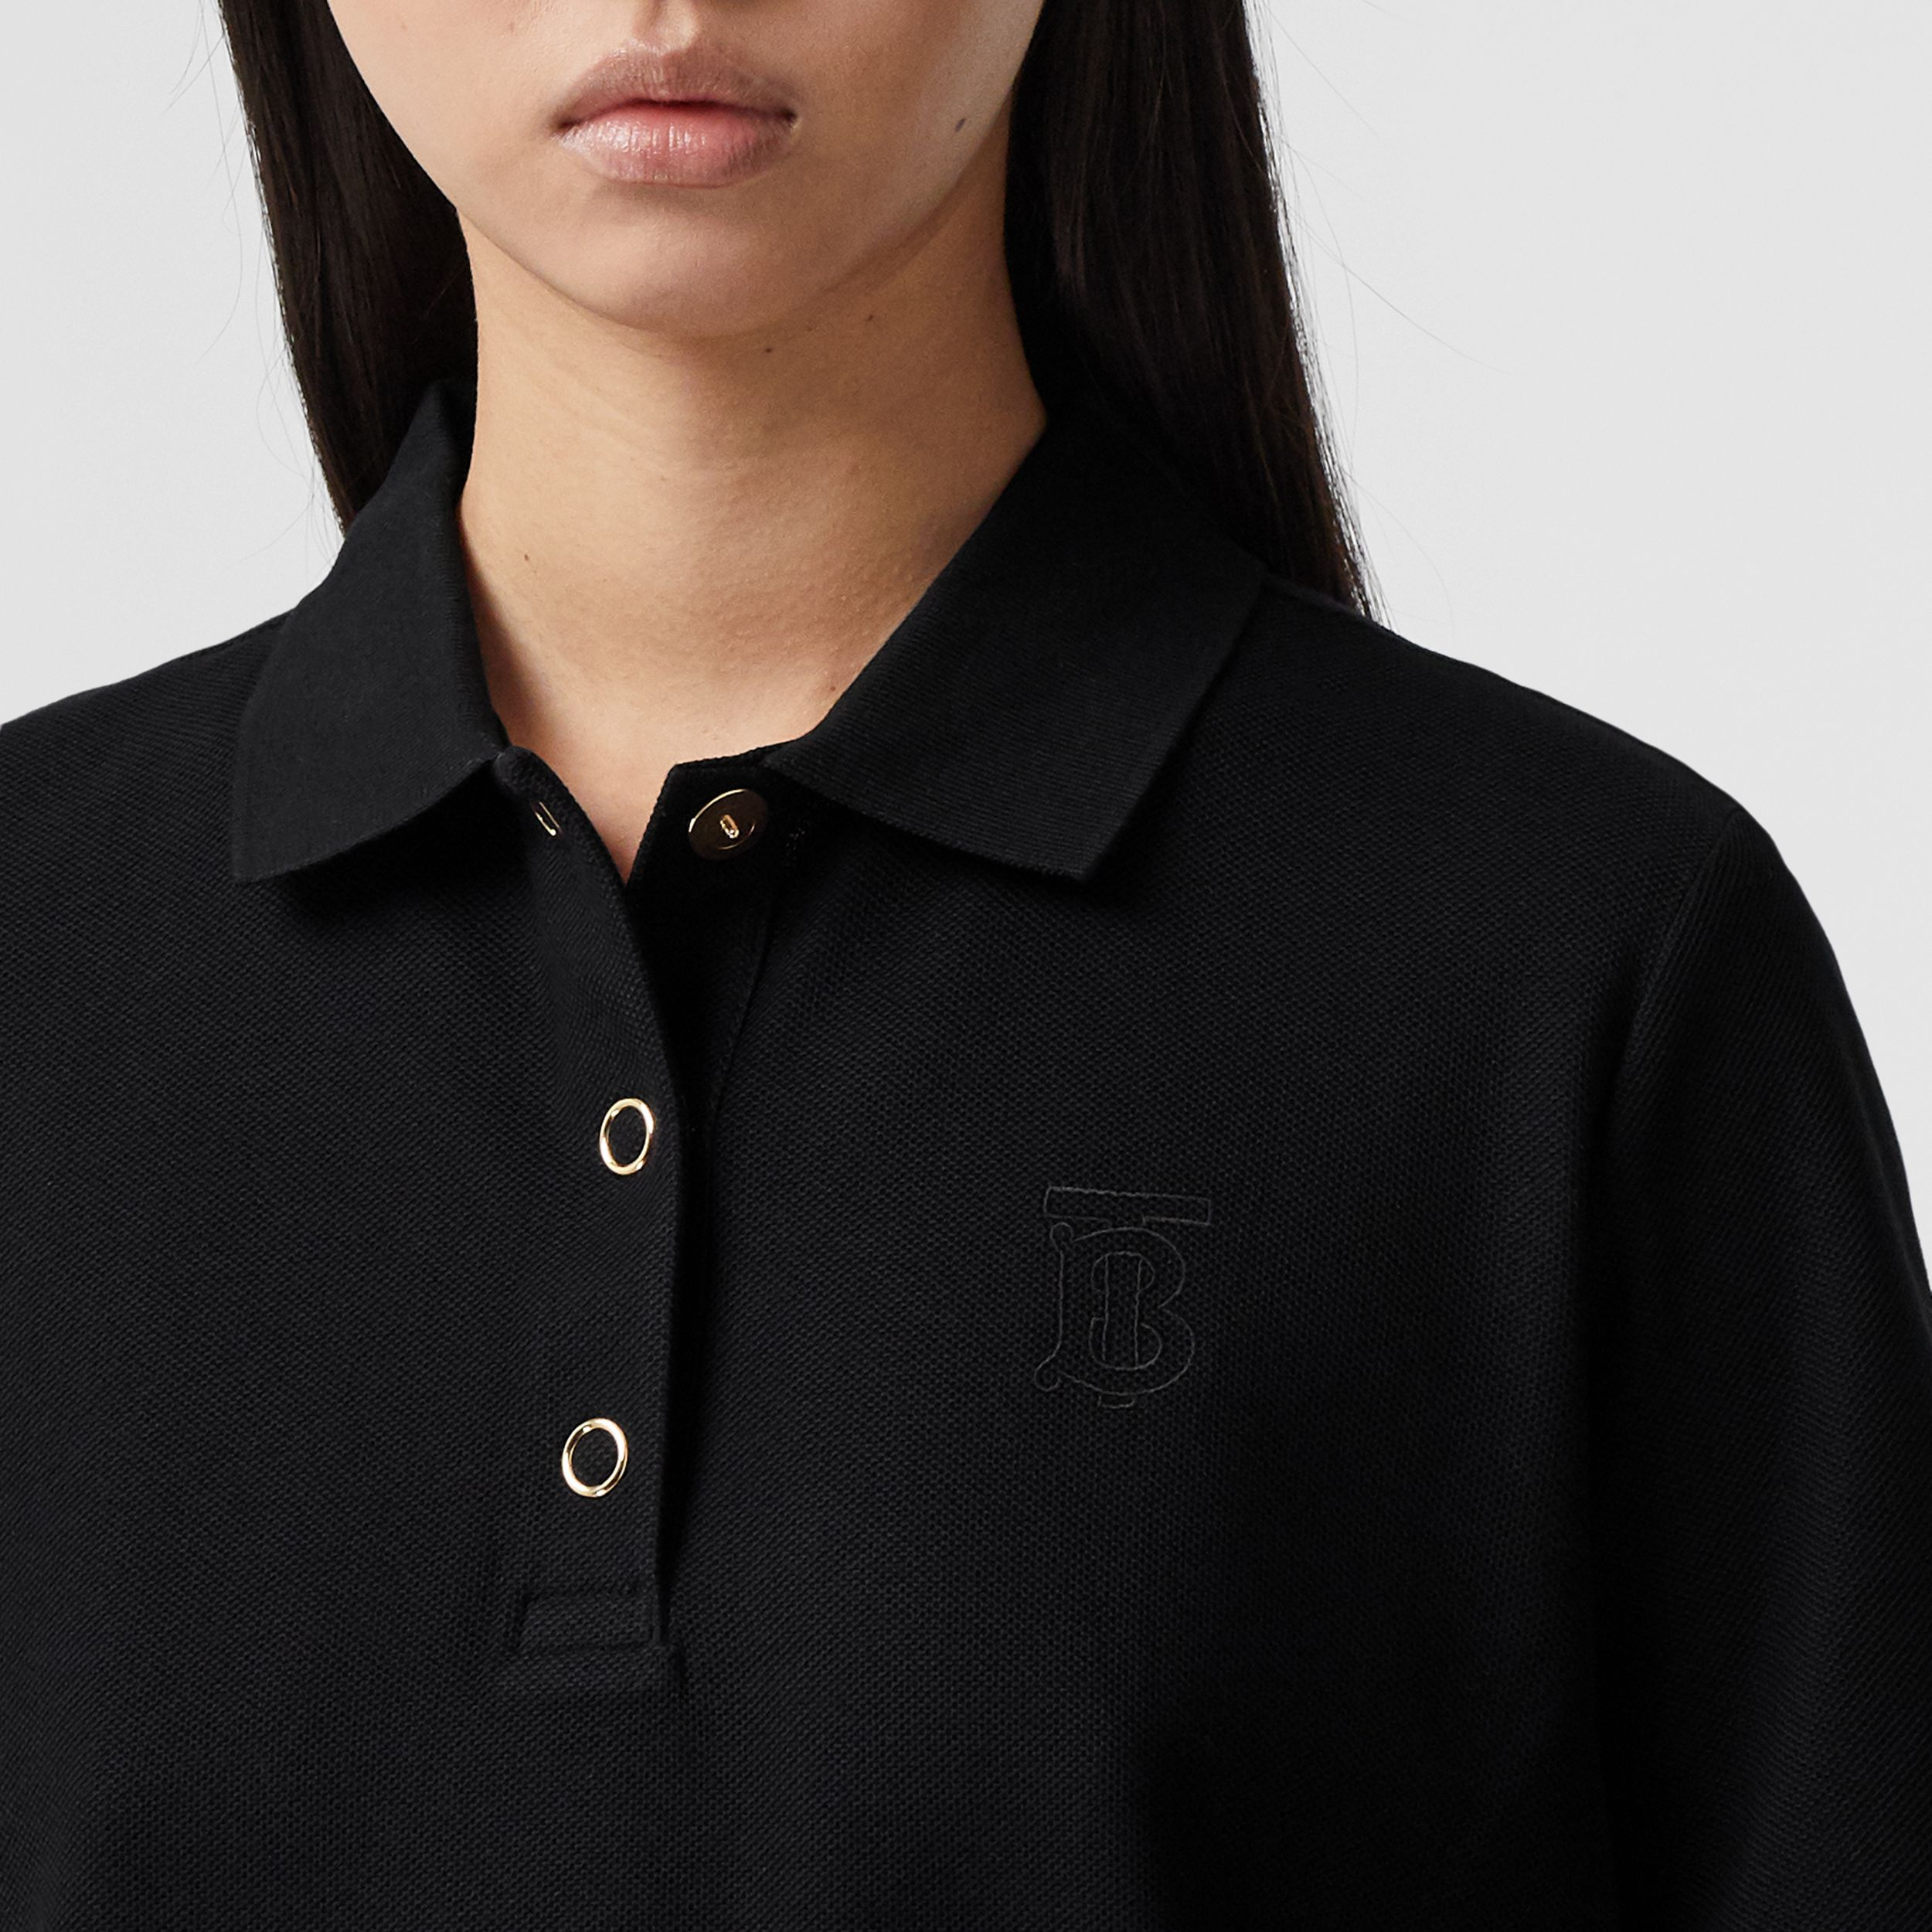 Monogram Motif Cotton Piqué Polo Shirt in Black - Women | Burberry Singapore - 2